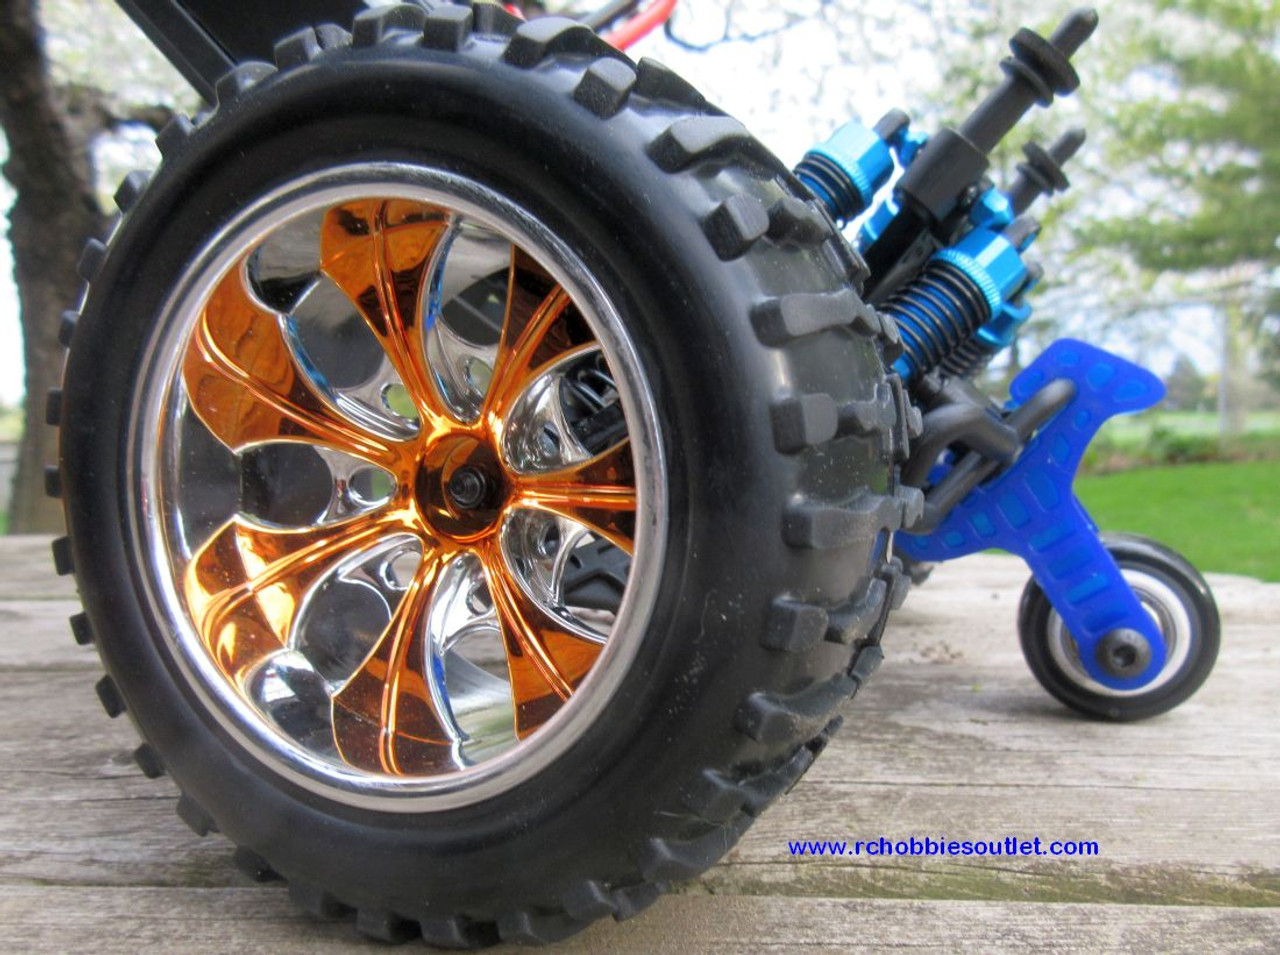 Wheelie Bar for 1/10 Scale HSP Monster Trucks, Redcat Volcano, etc.